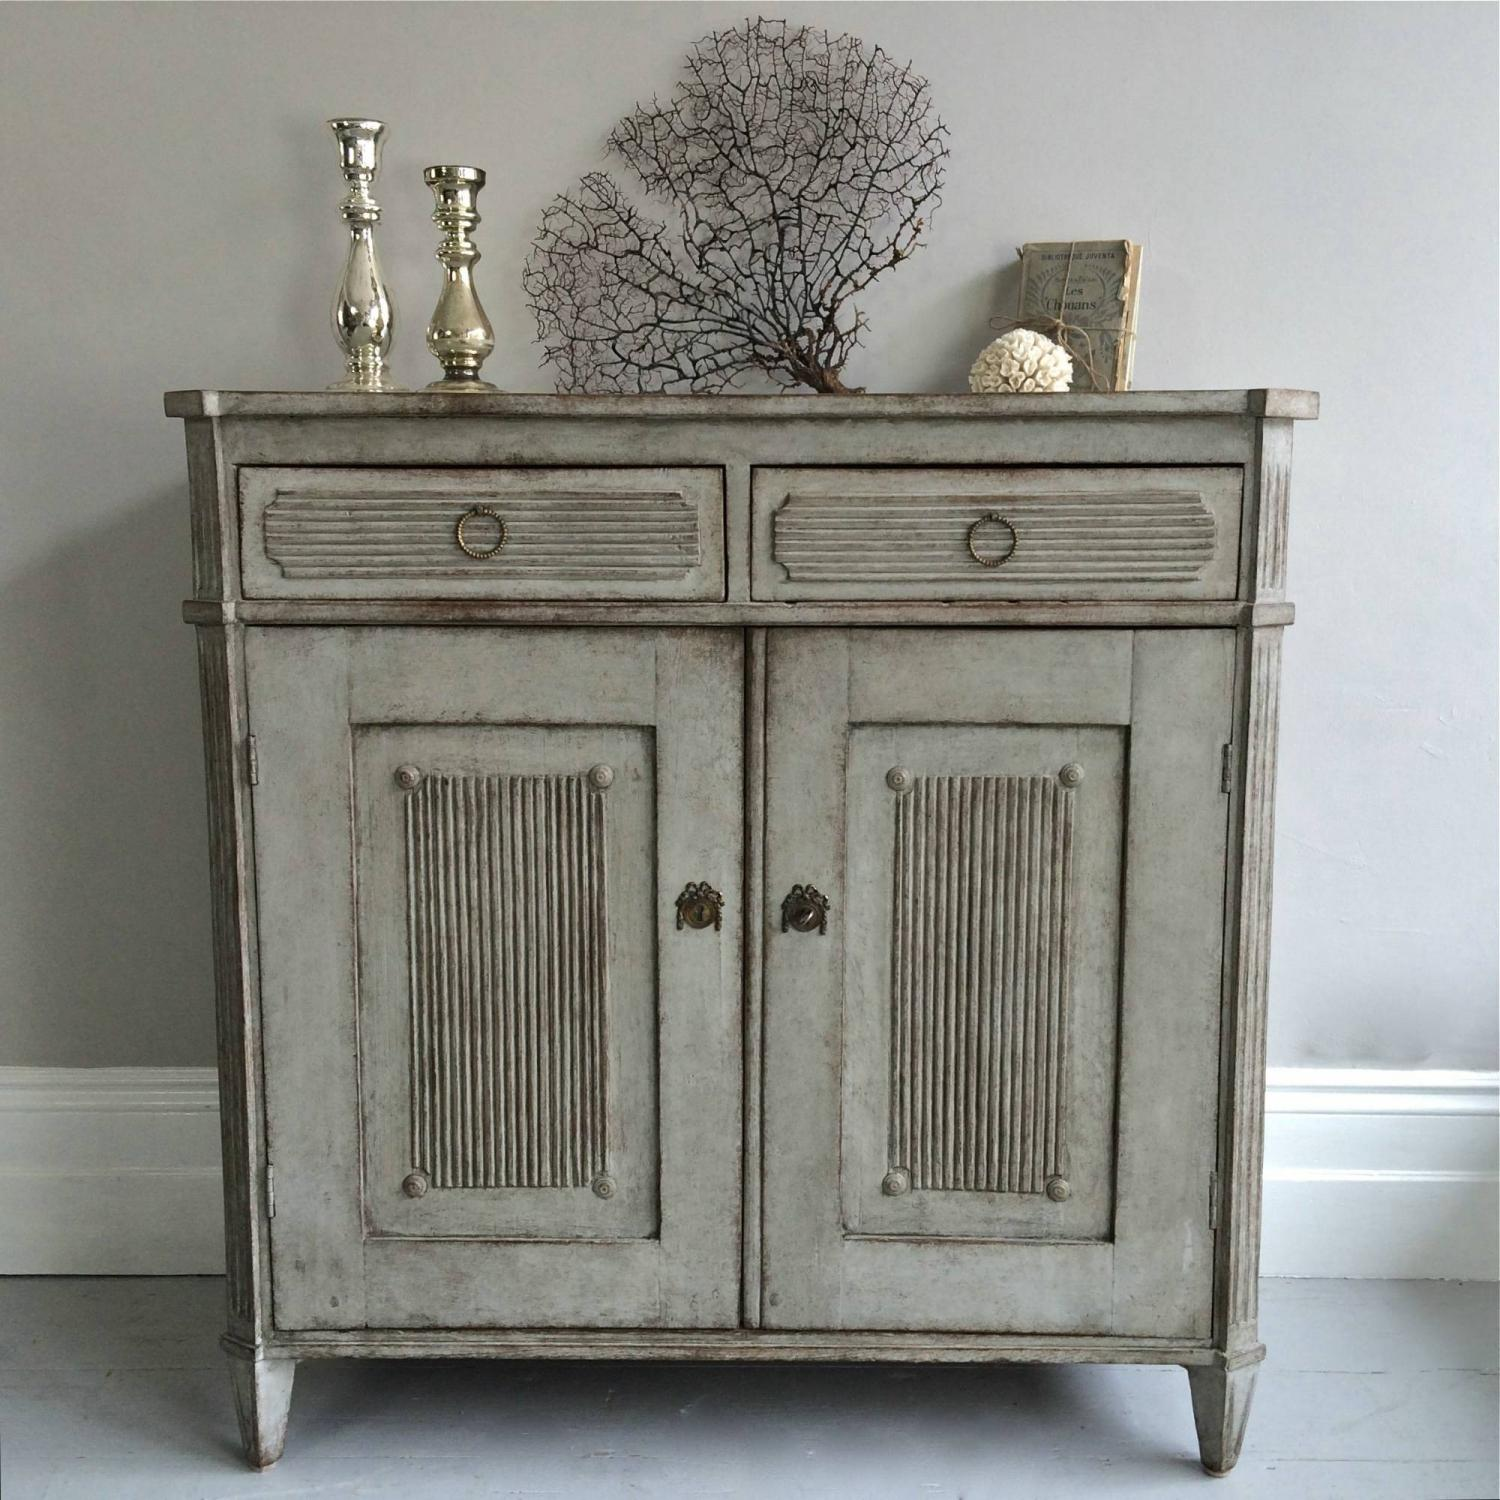 RICHLY CARVED SWEDISH GUSTAVIAN SIDEBOARD